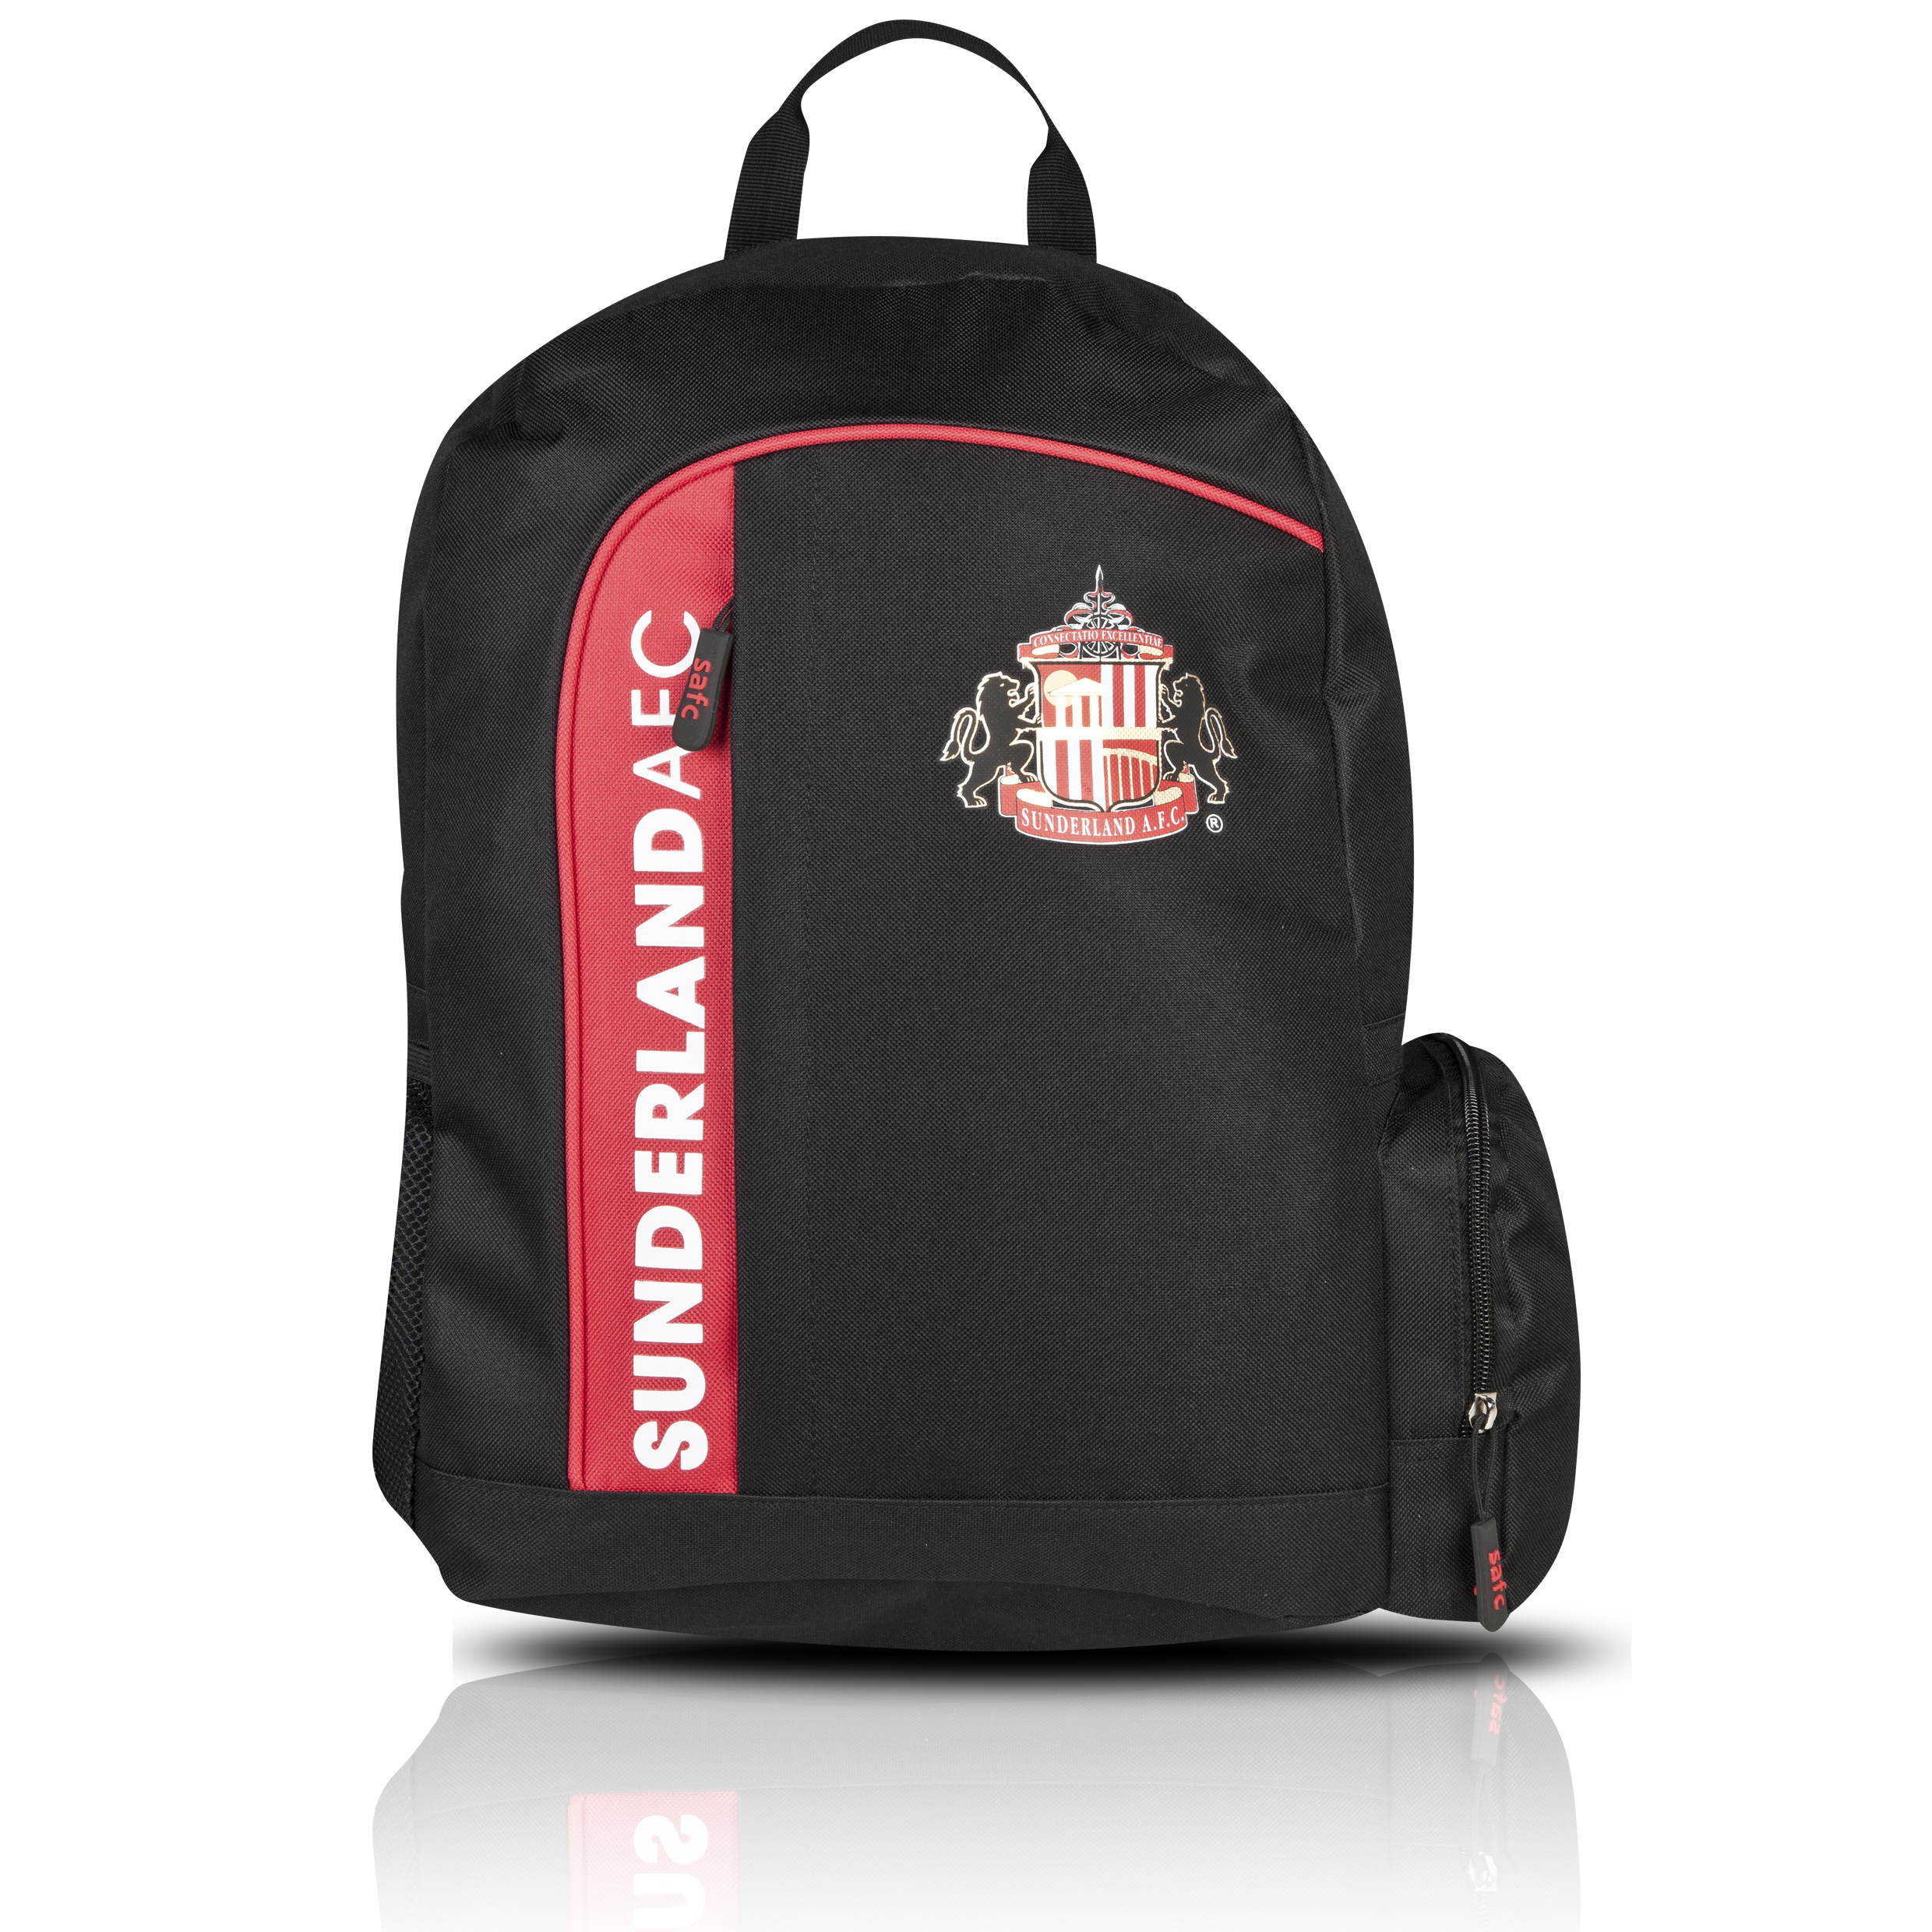 Sunderland Core Backpack - Black/Red